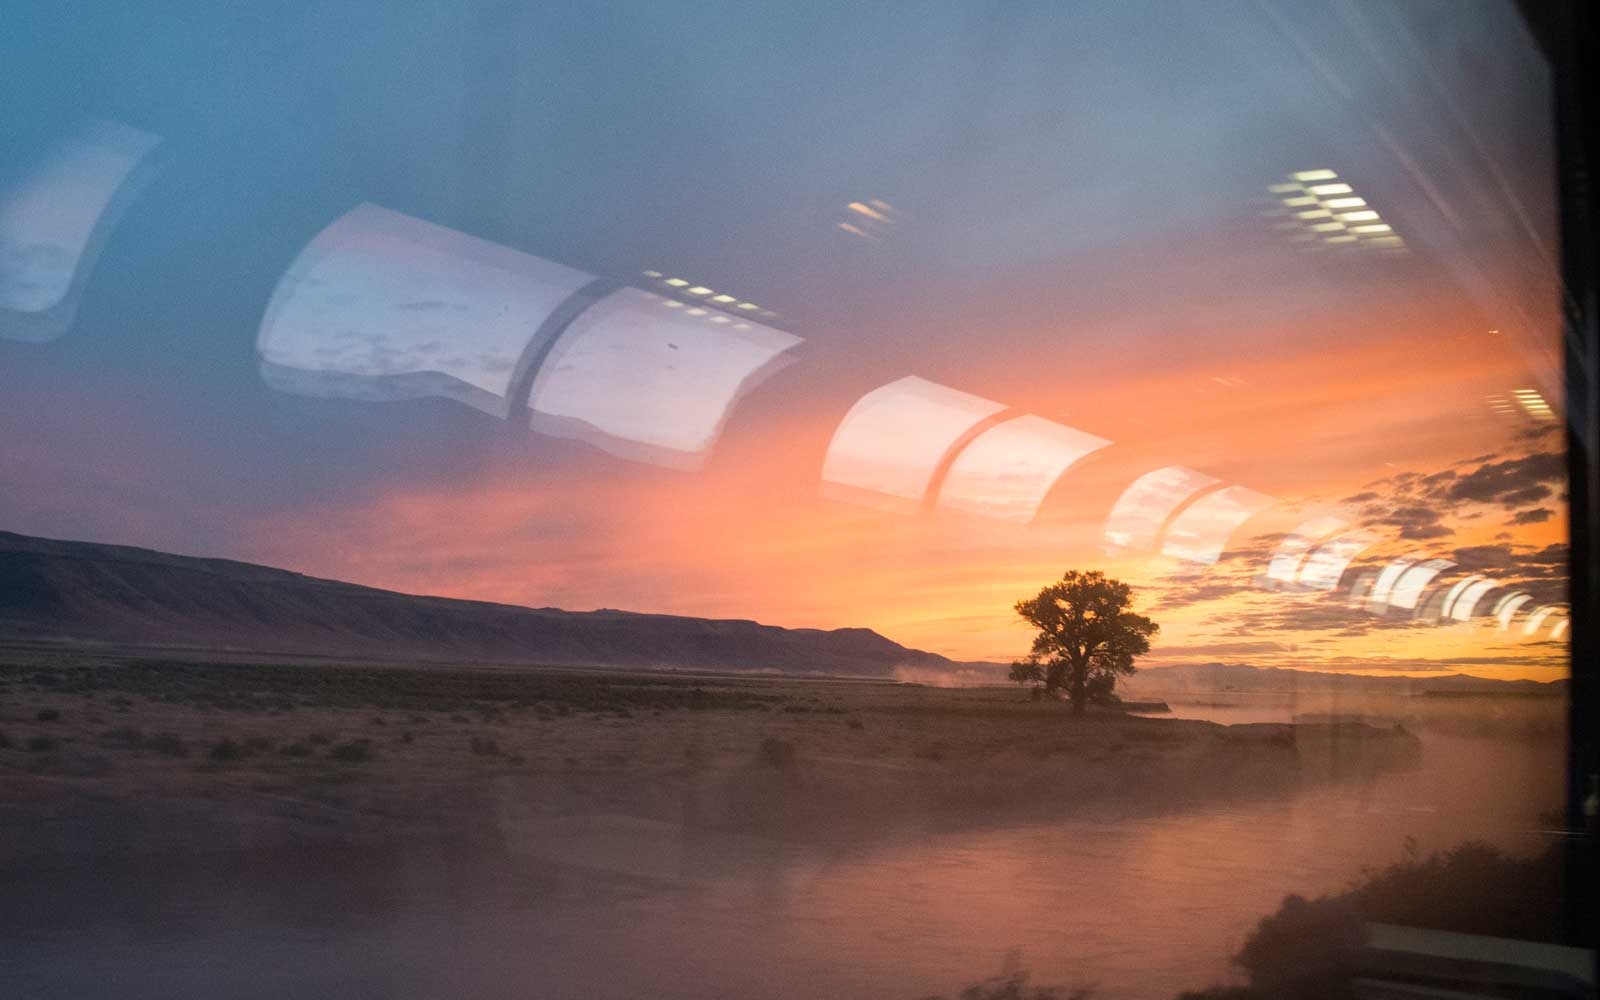 Amtrak Wants to Send 'Real People' on Its Most Scenic Long-distance Routes for Free